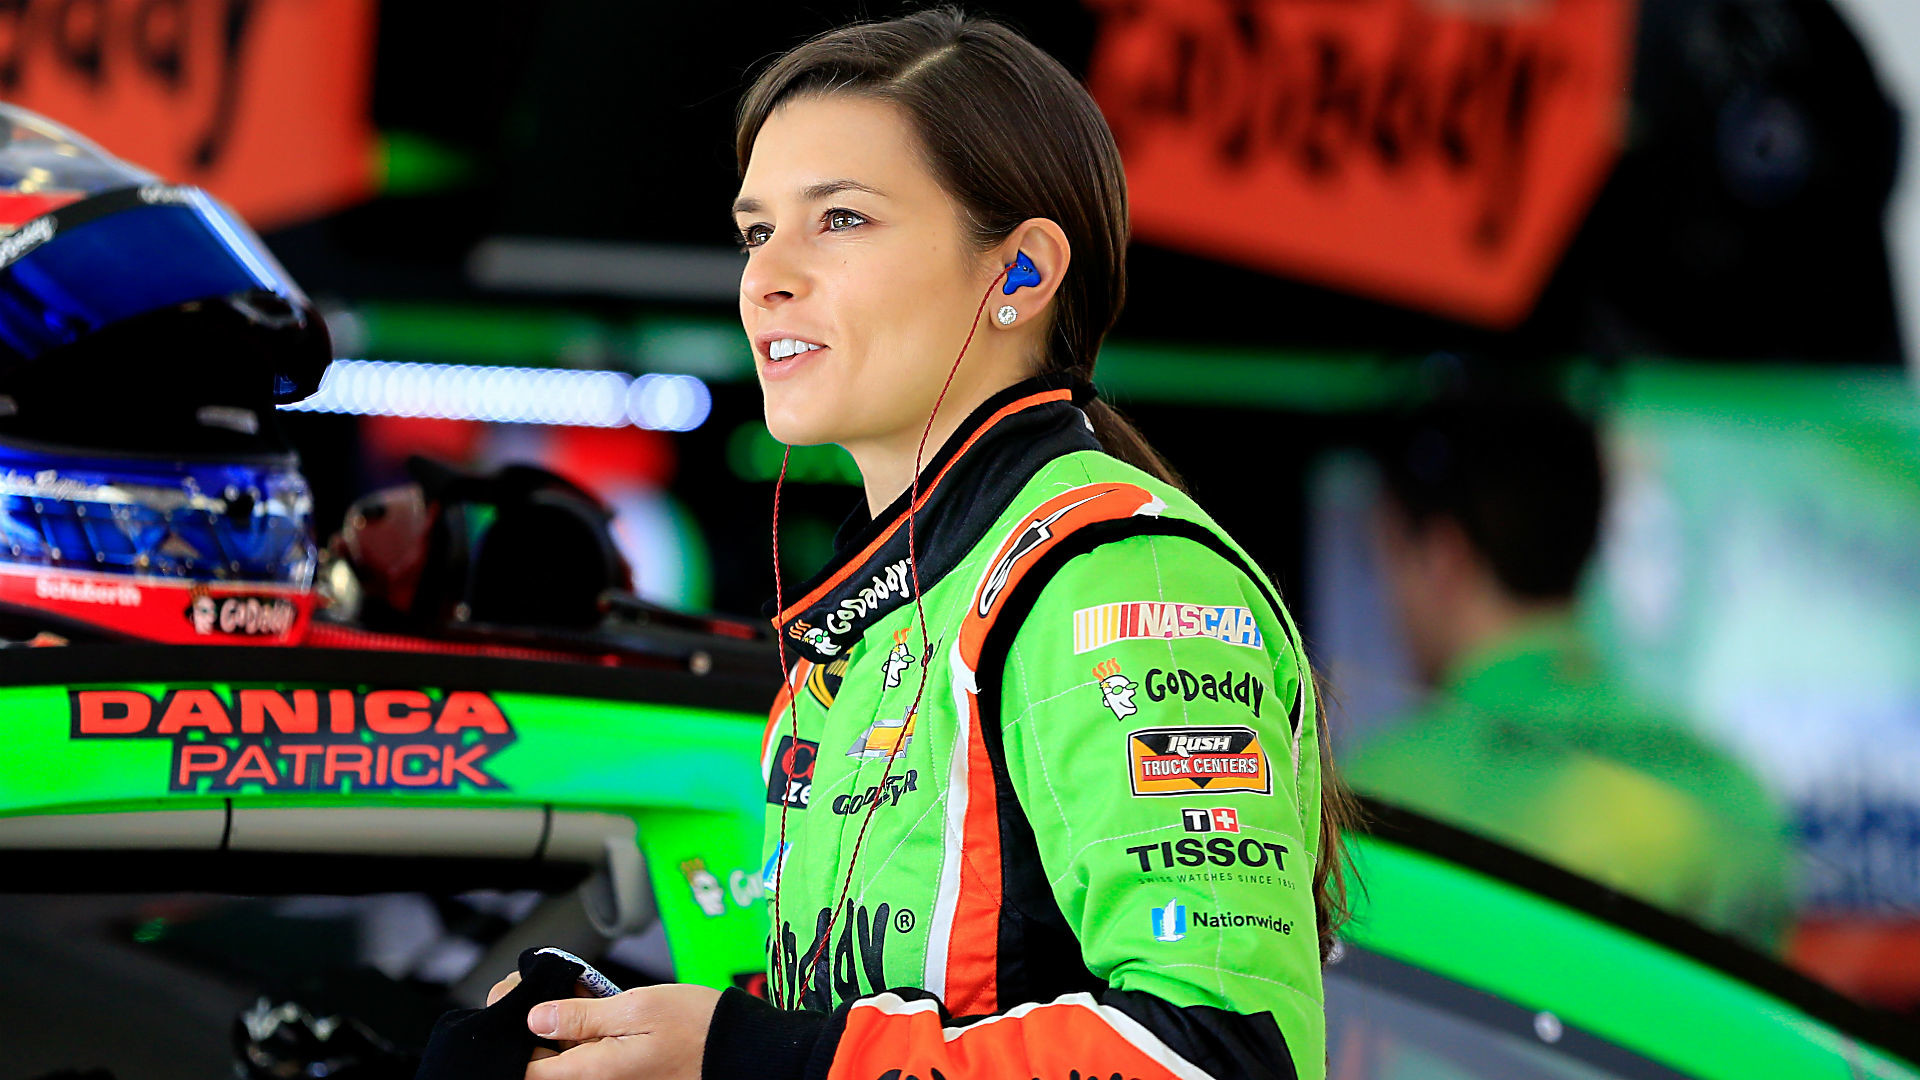 Possible replacements for Danica Patrick at Stewart-Haas Racing | Sporting  News